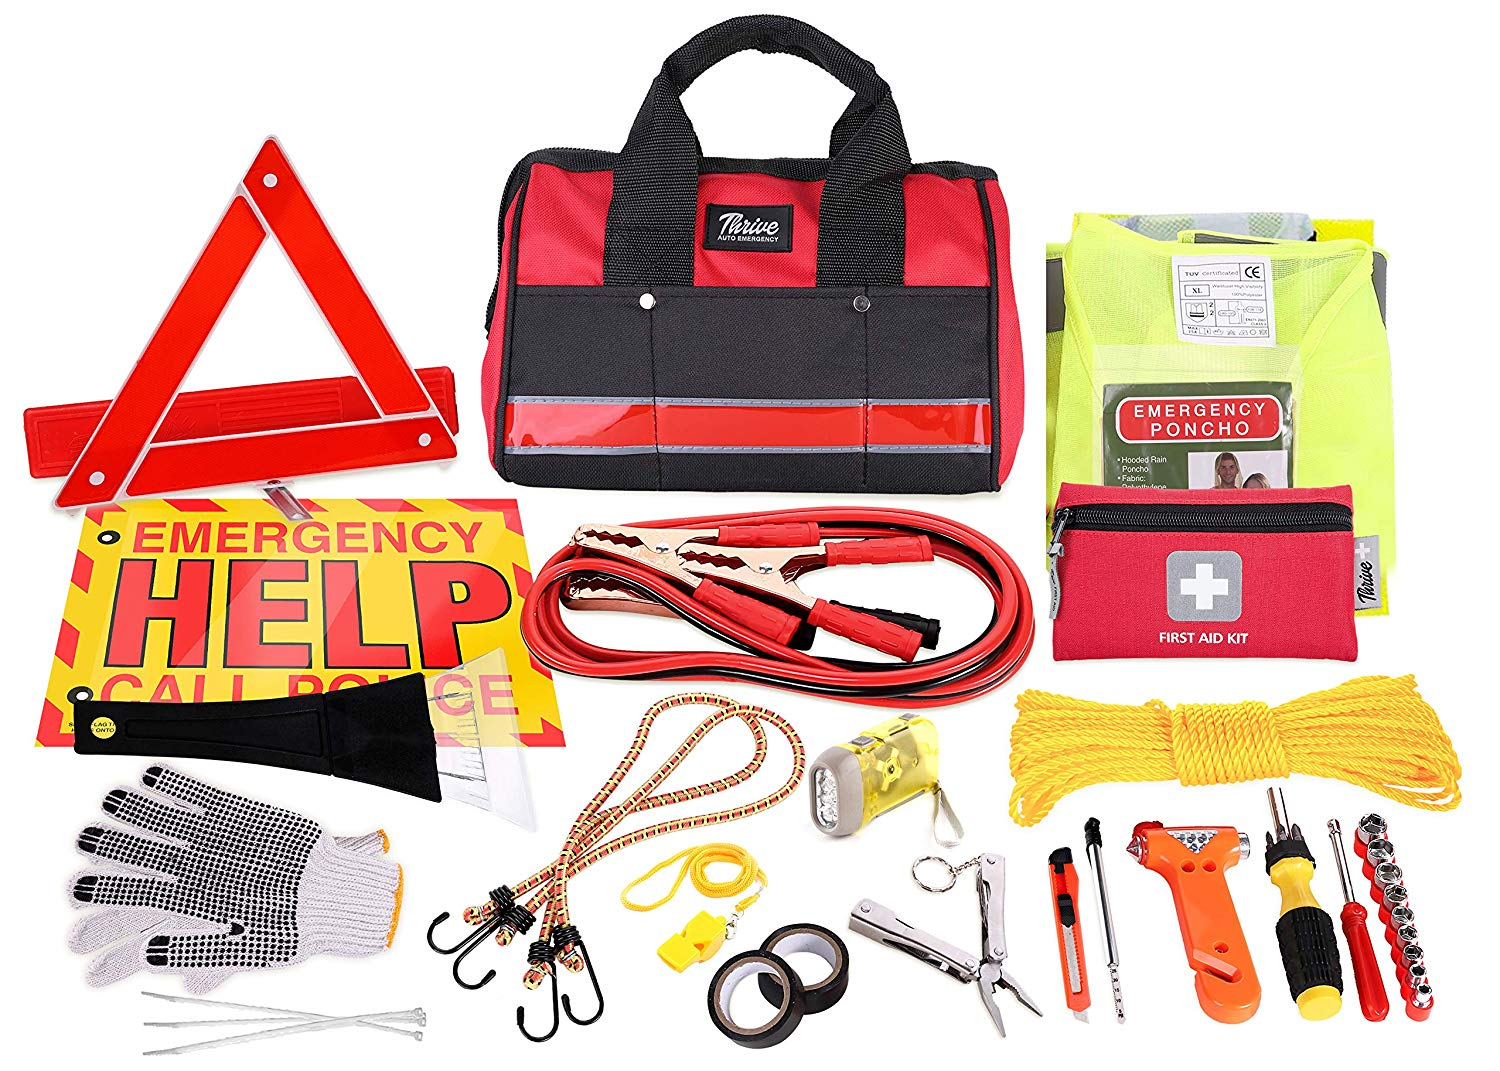 Thrive Auto Emergency Kit + First Aid Kit